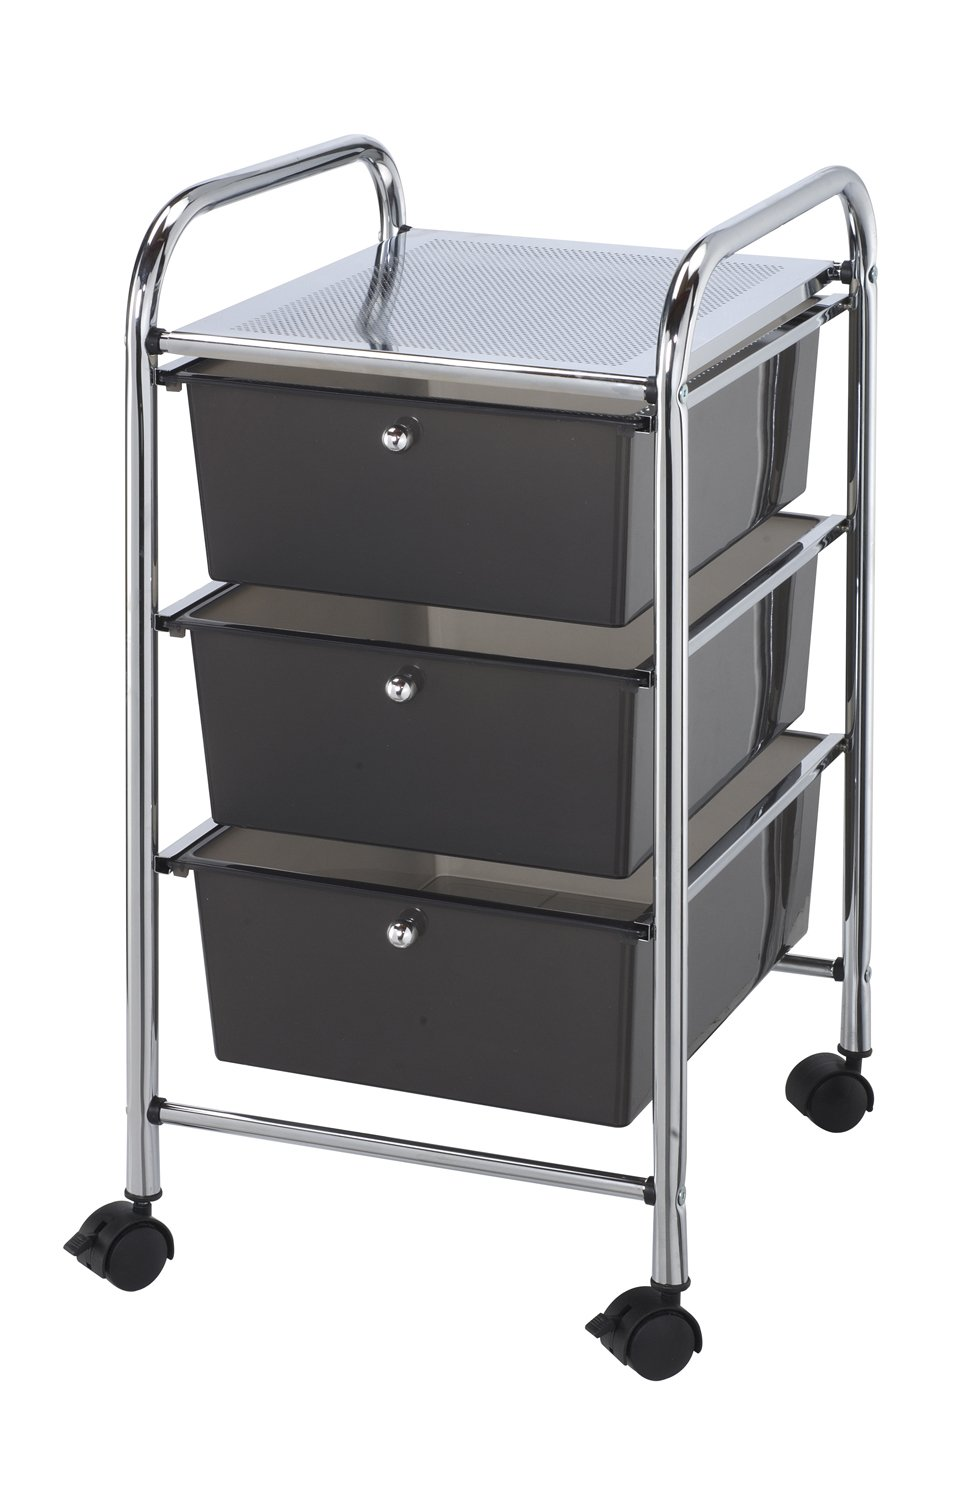 Blue Hills Studio SC3SM 13-Inch by 26-Inch by 15-1/2-Inch Storage Cart with 3 Drawers, Smoke by Blue Hills Studio